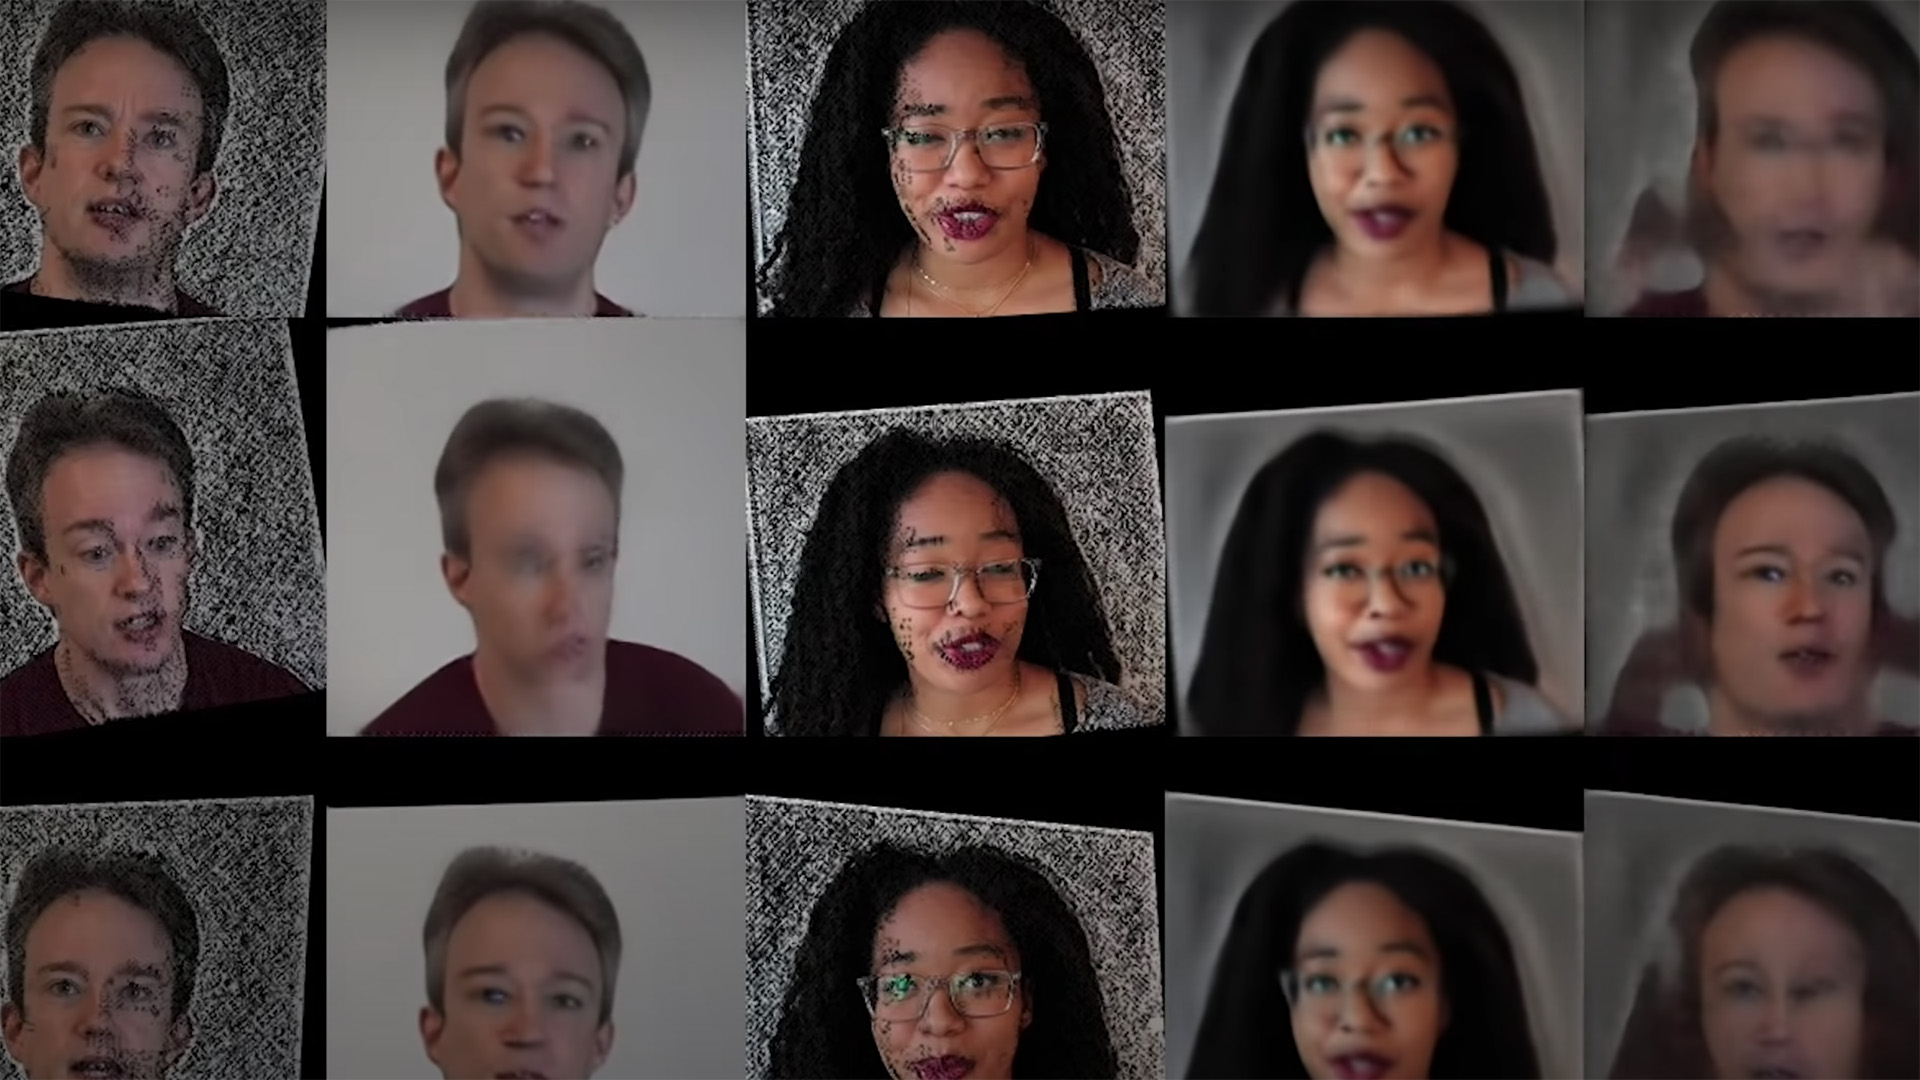 mashable.com - Sam Haysom - YouTuber challenges scientist to create an AI version of him for $100